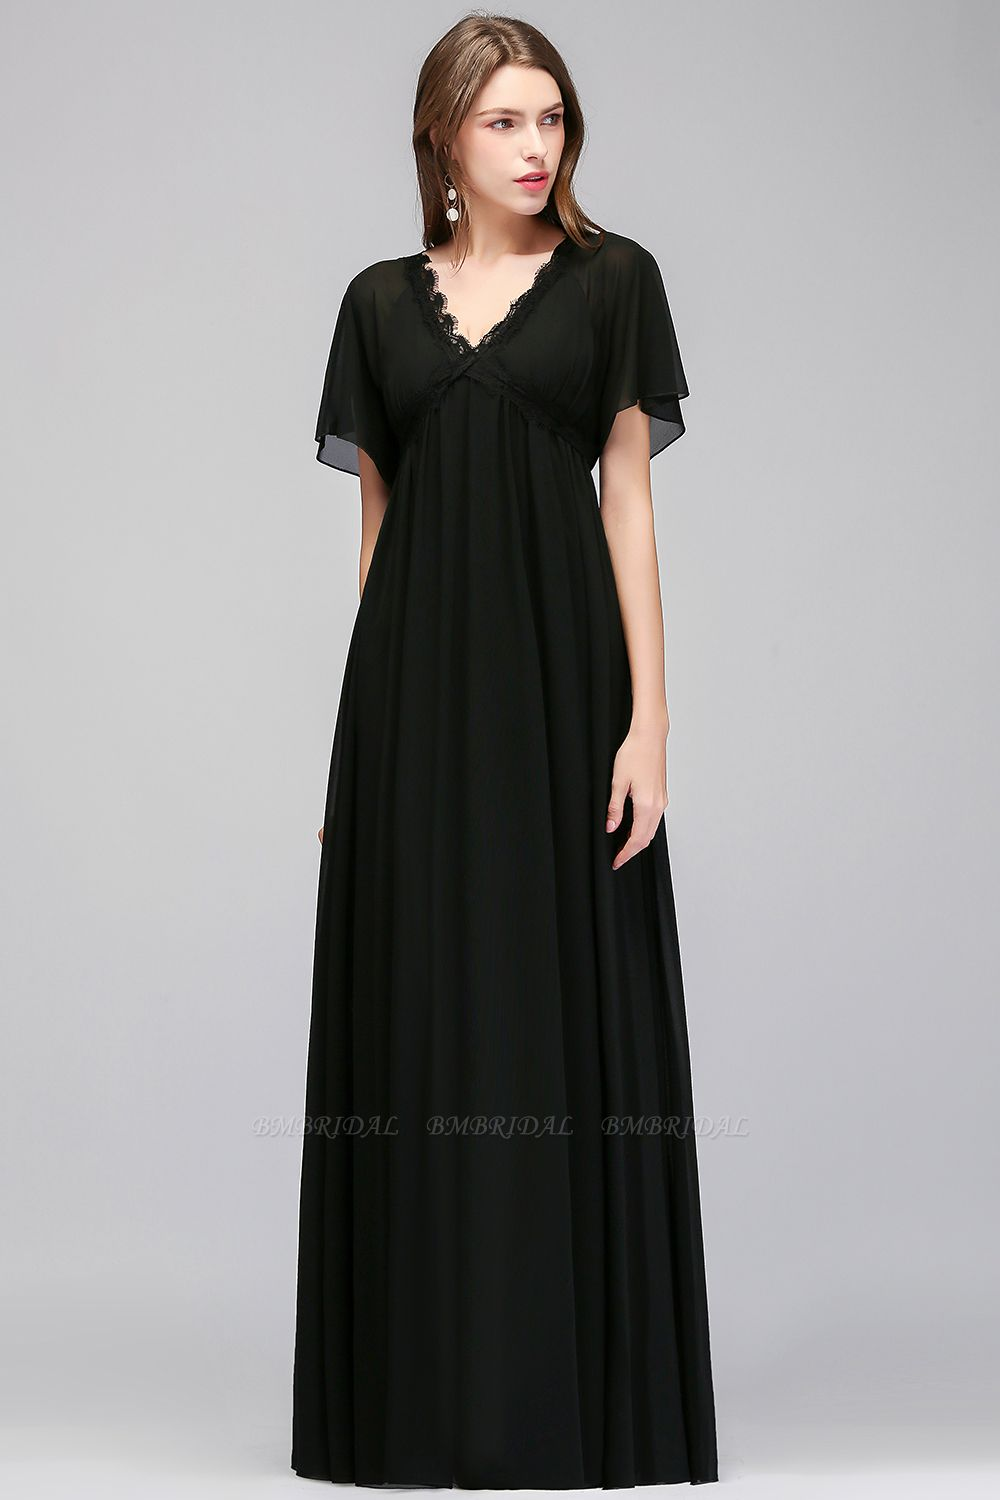 BMbridal Affordable Chiffon Black V-Neck Bridesmaid Dresses with Short-Sleeves